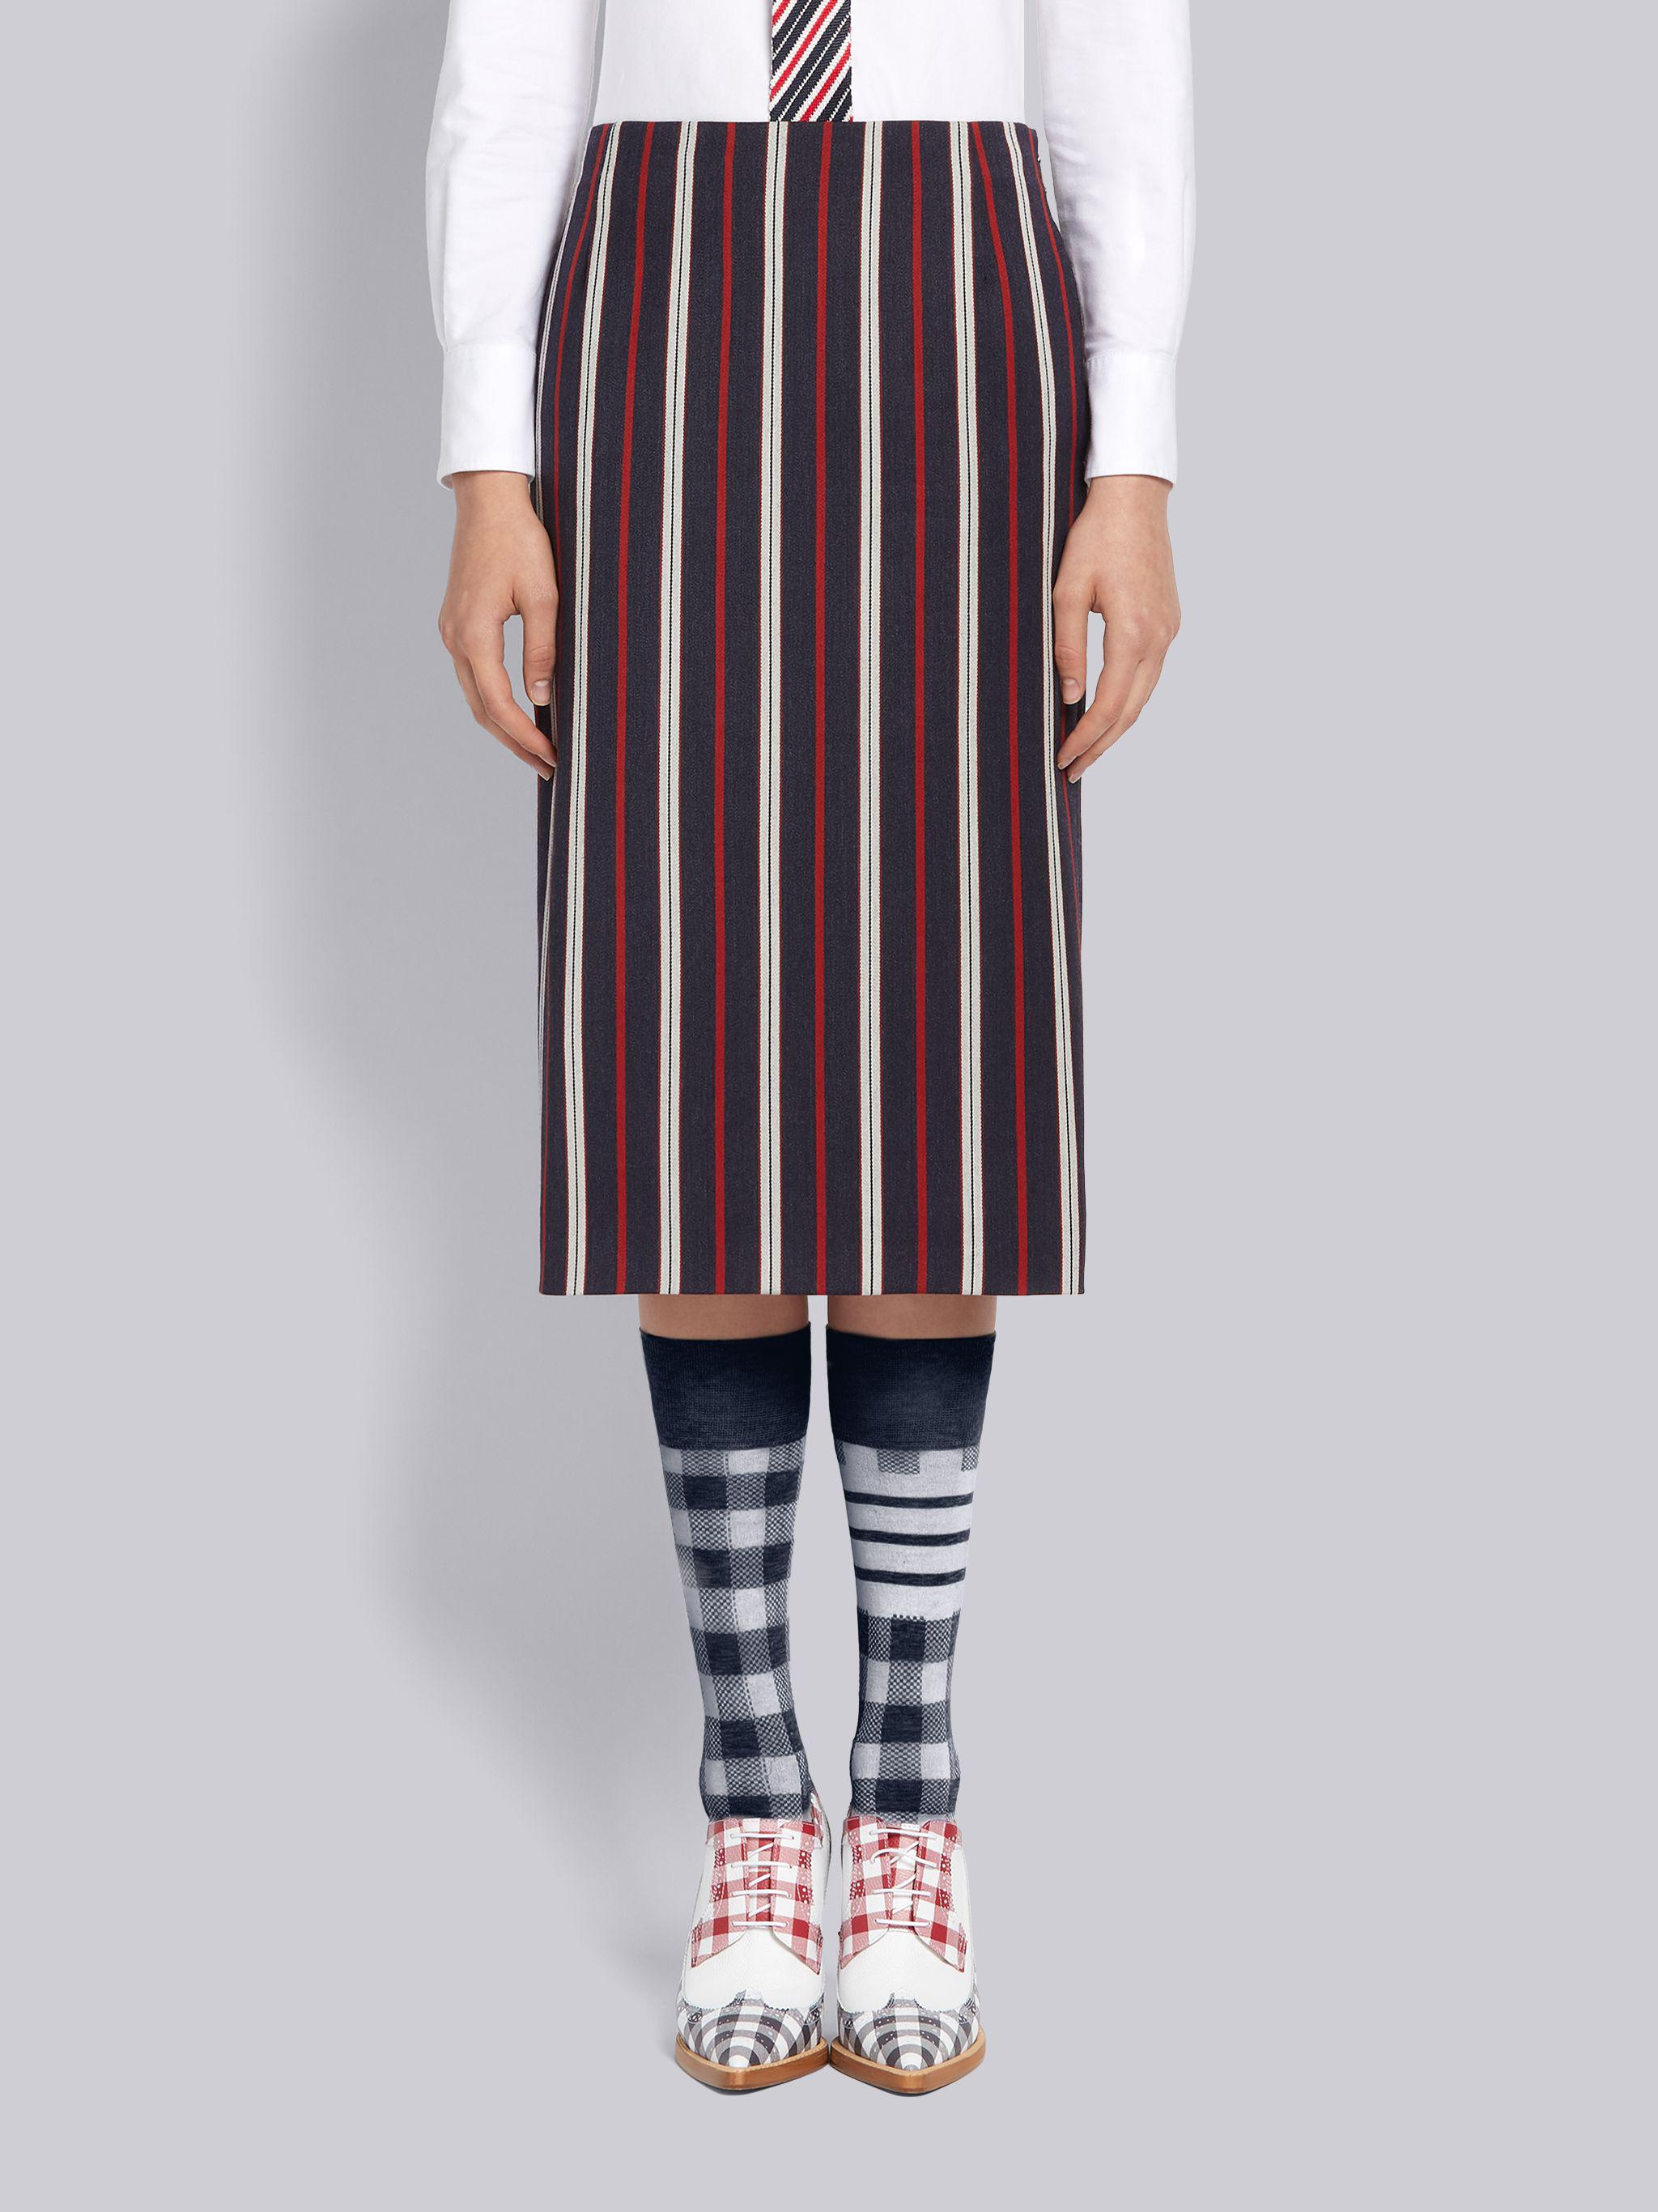 Multi-Color Wool Cotton Suiting Variegated Rep Stripe Knee Length Sheath Pencil Skirt